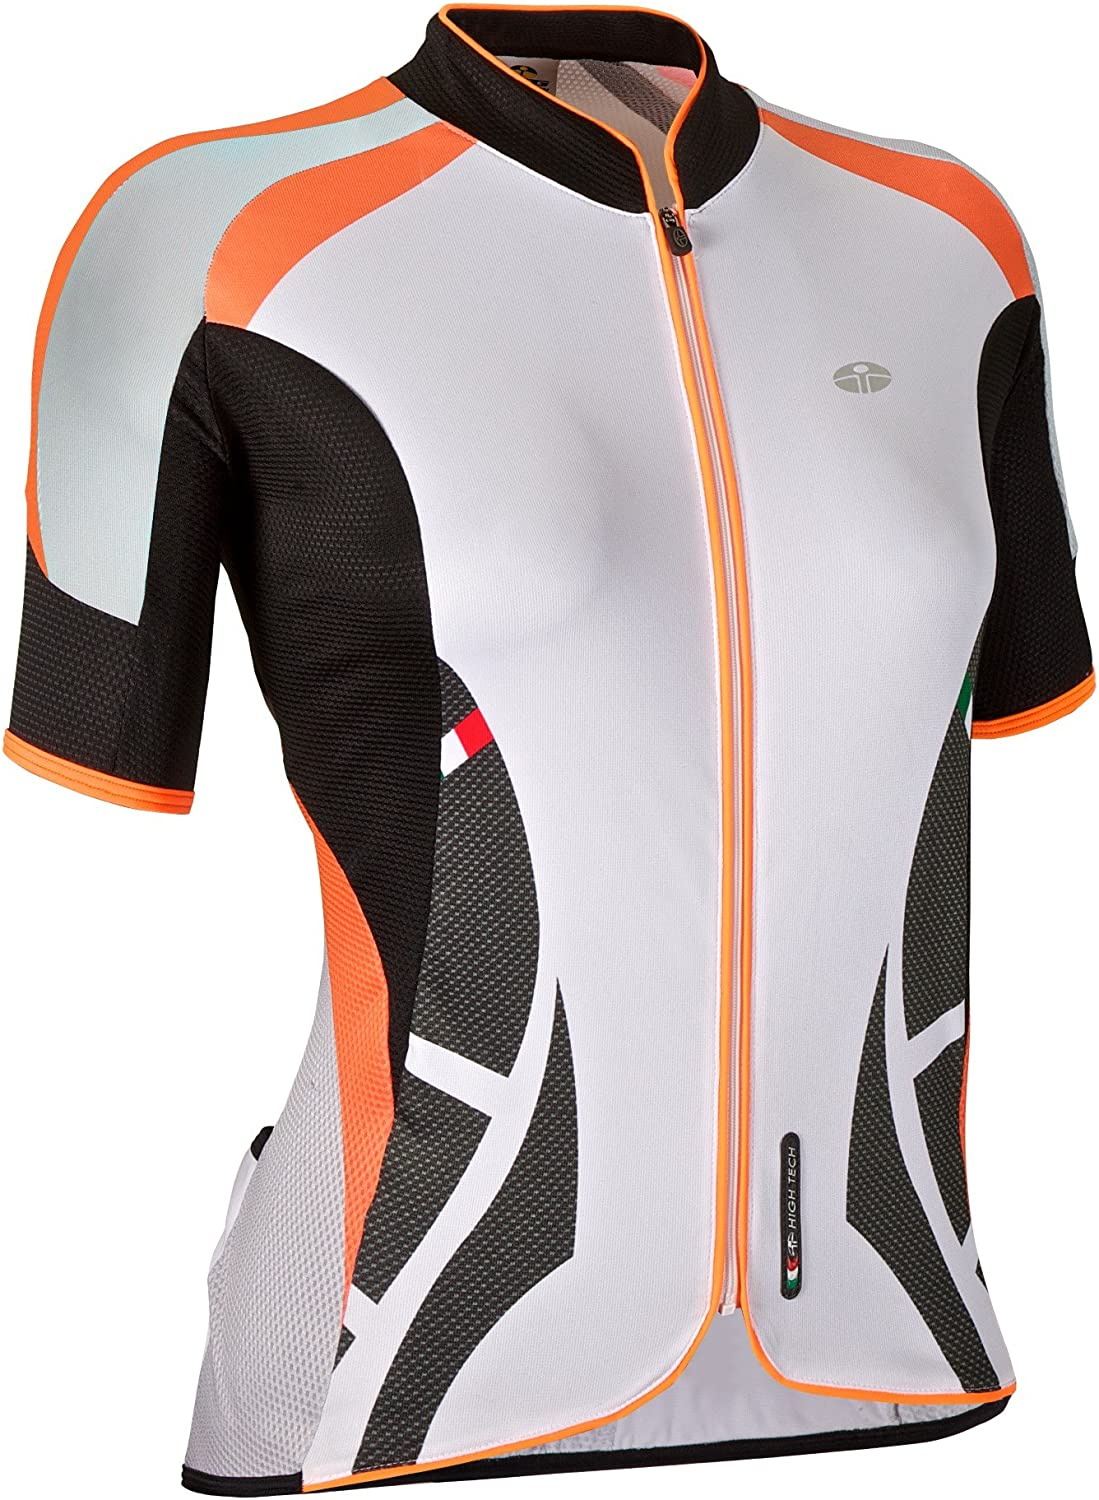 GSG Cristallo  Women′s Cycling TShirt  with Zip  Lycra  orange